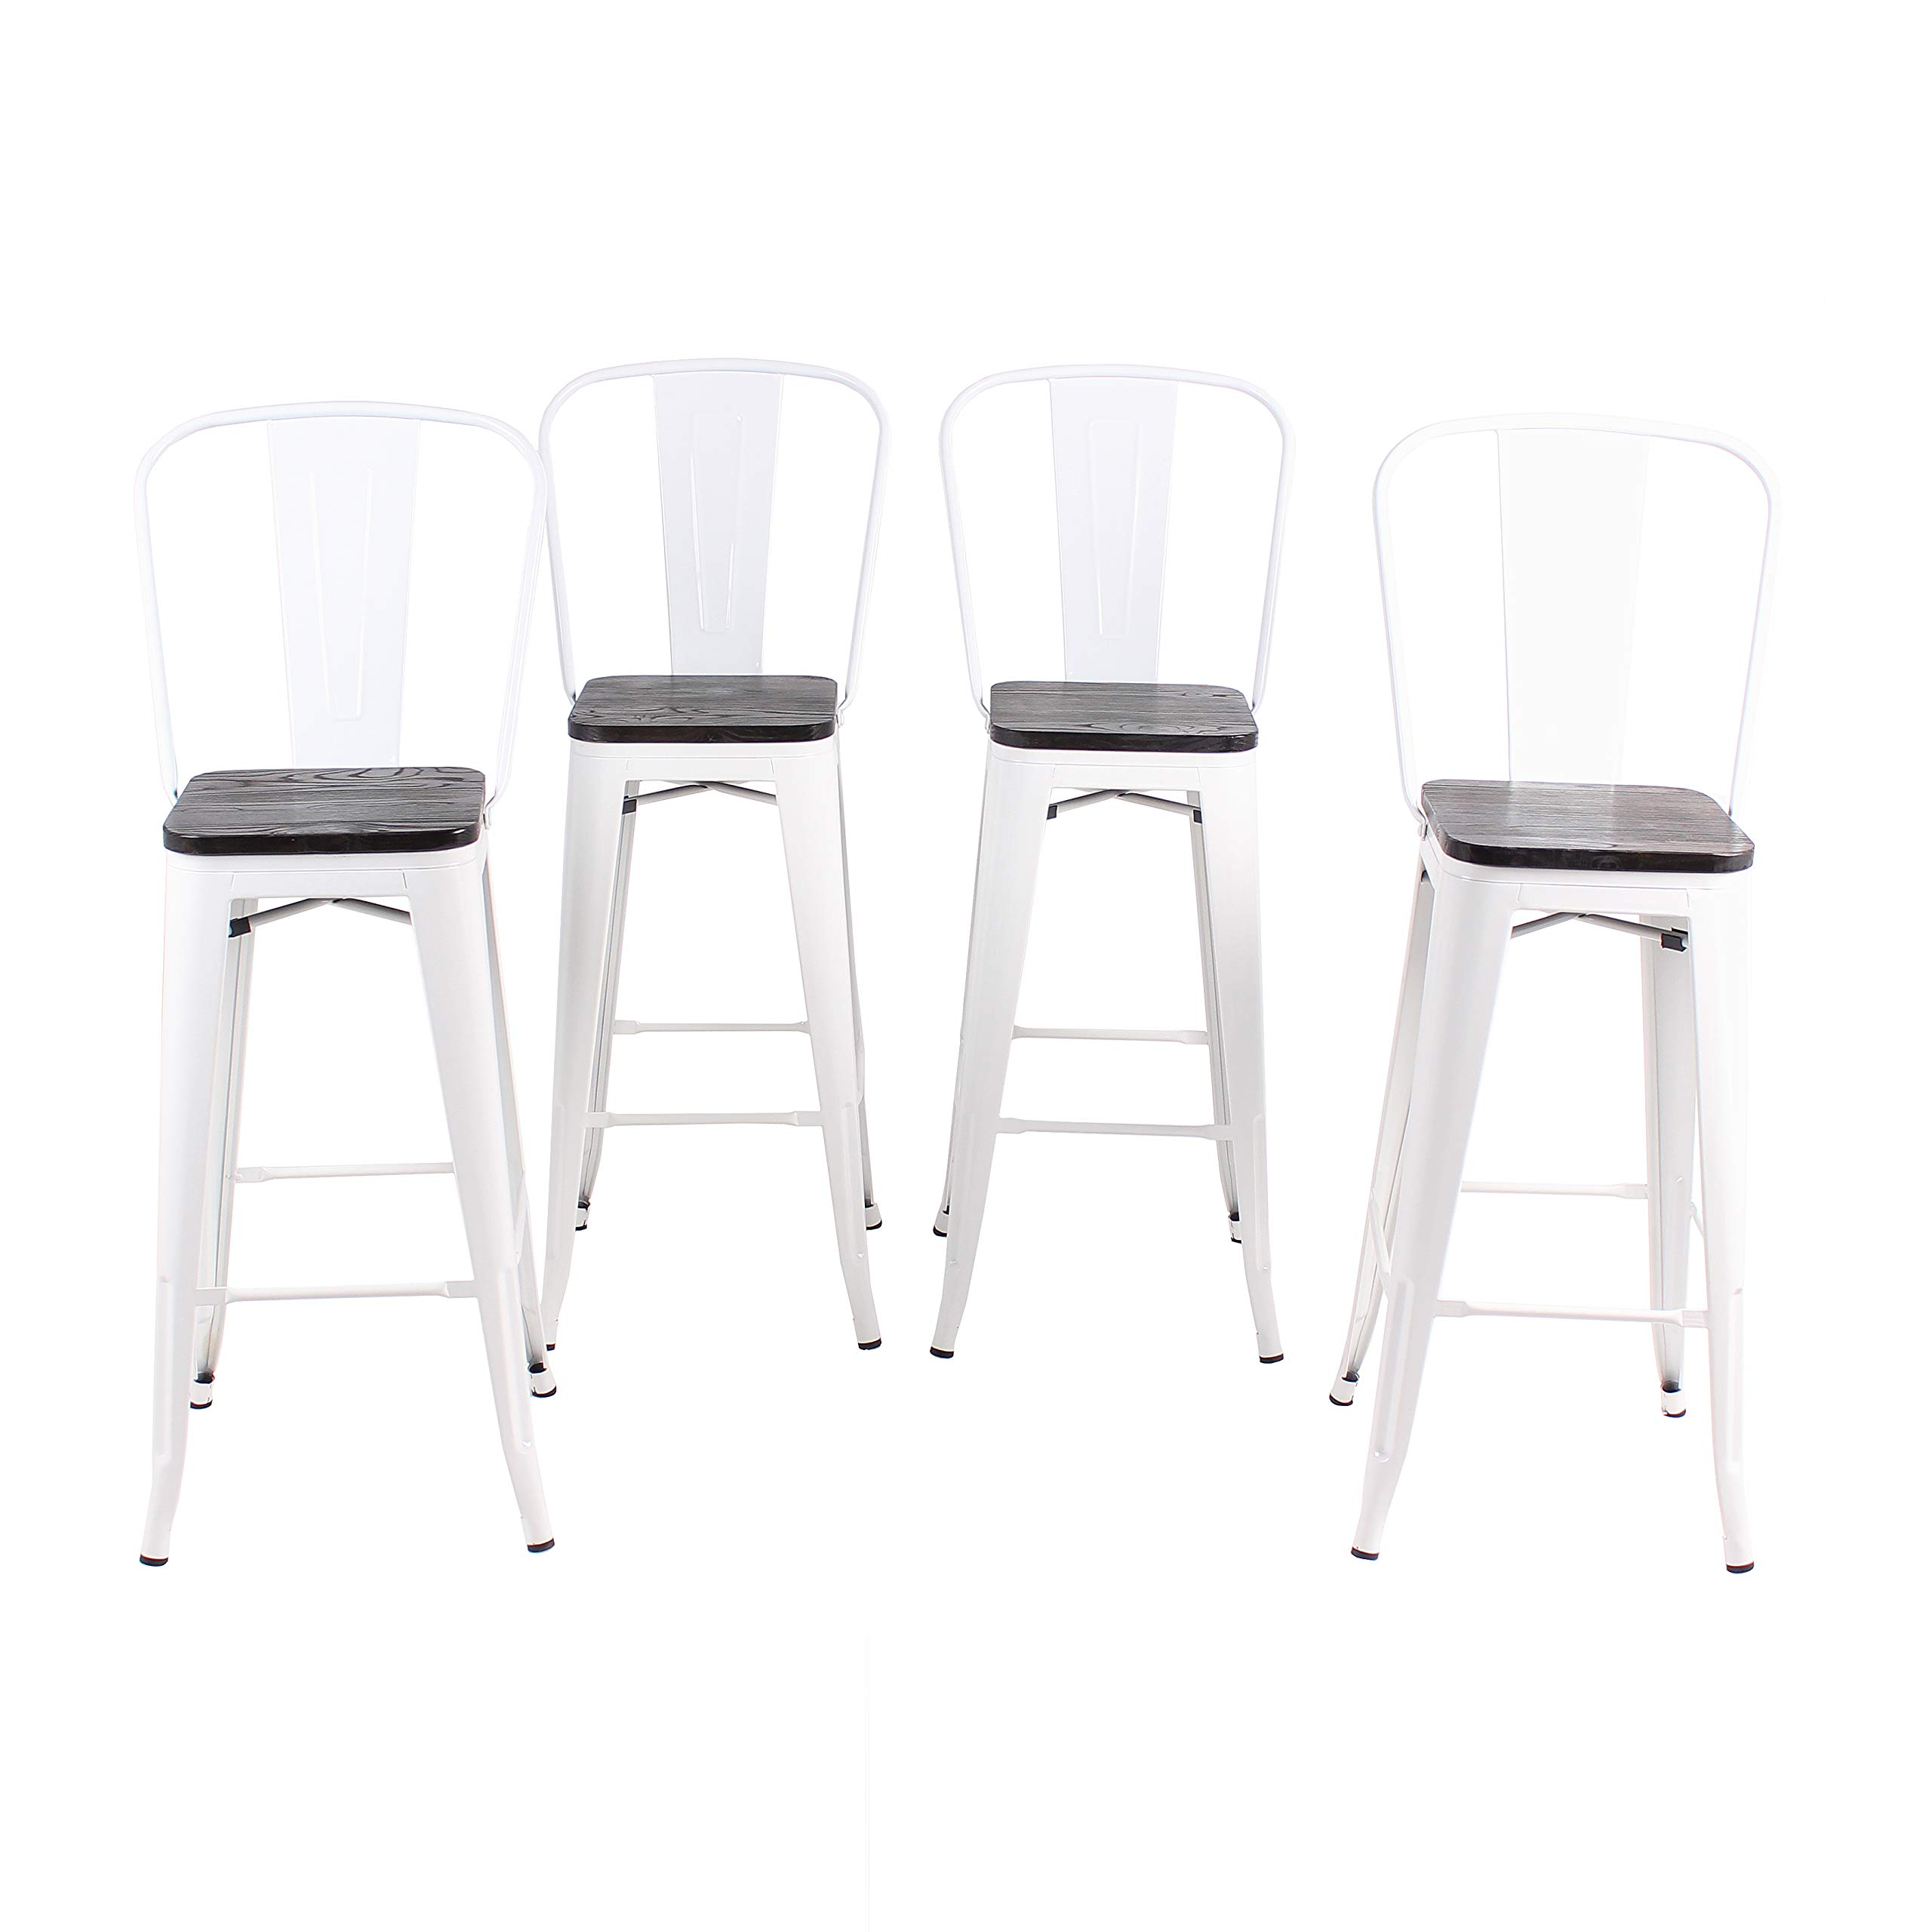 Buschman Set of 4 White Wooden Seat 24 Inch Counter Height Metal Bar Stools with High Back, Indoor/Outdoor by Buschman Store